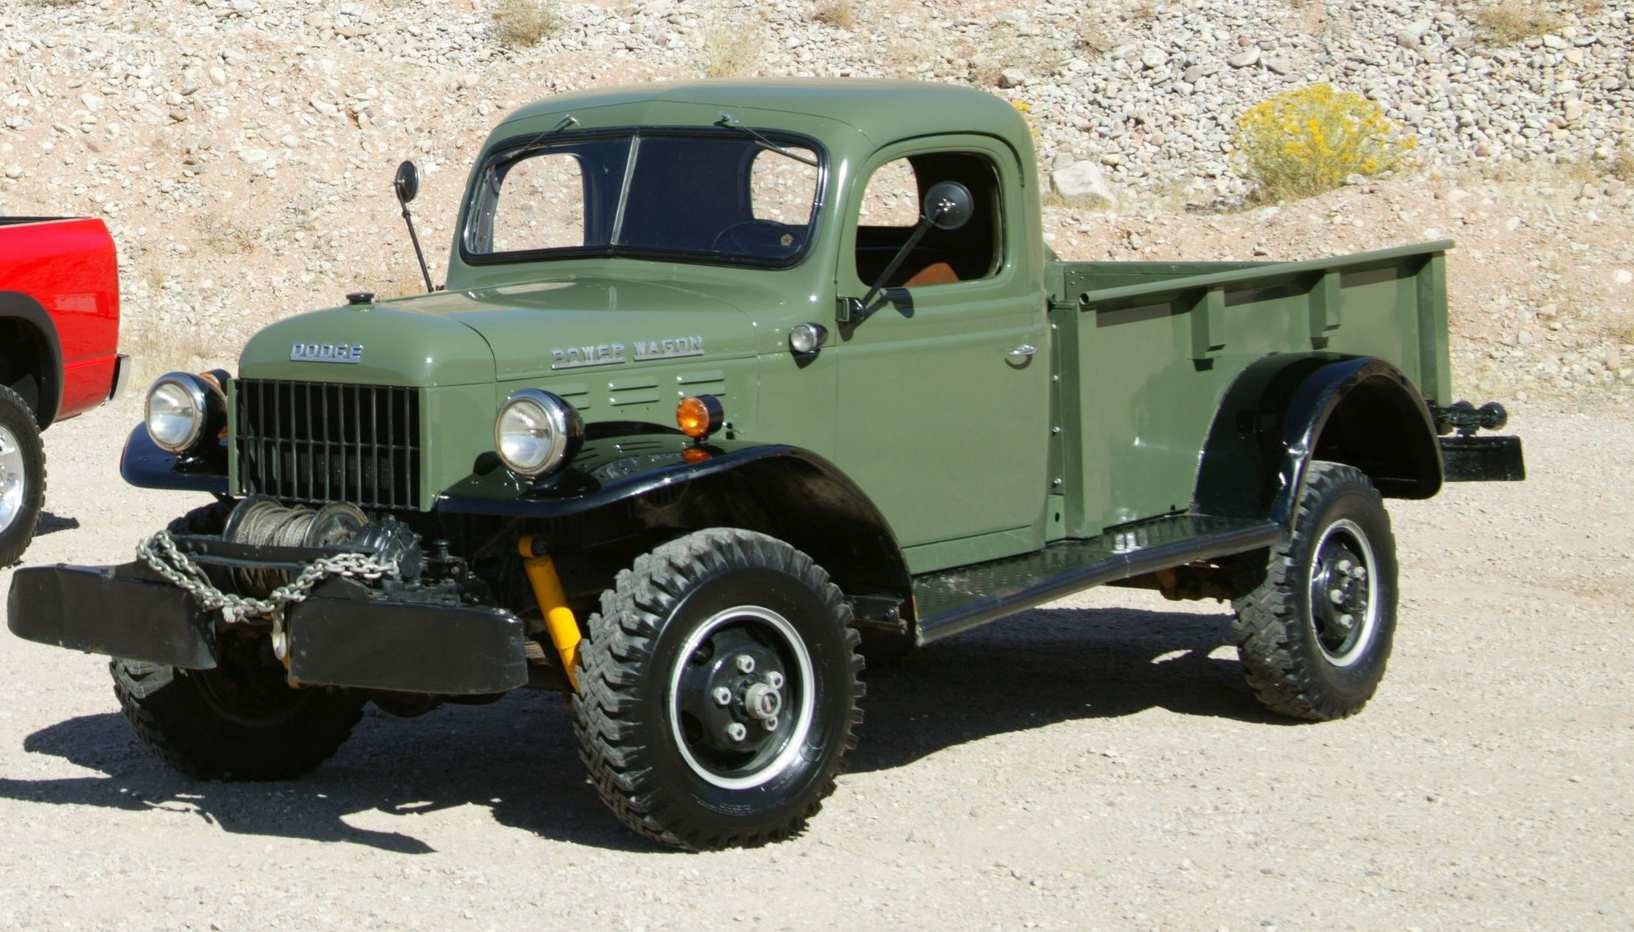 1946 Dodge Power Wagon >> 1946 Dodge Power Wagon Review - Gallery - Top Speed